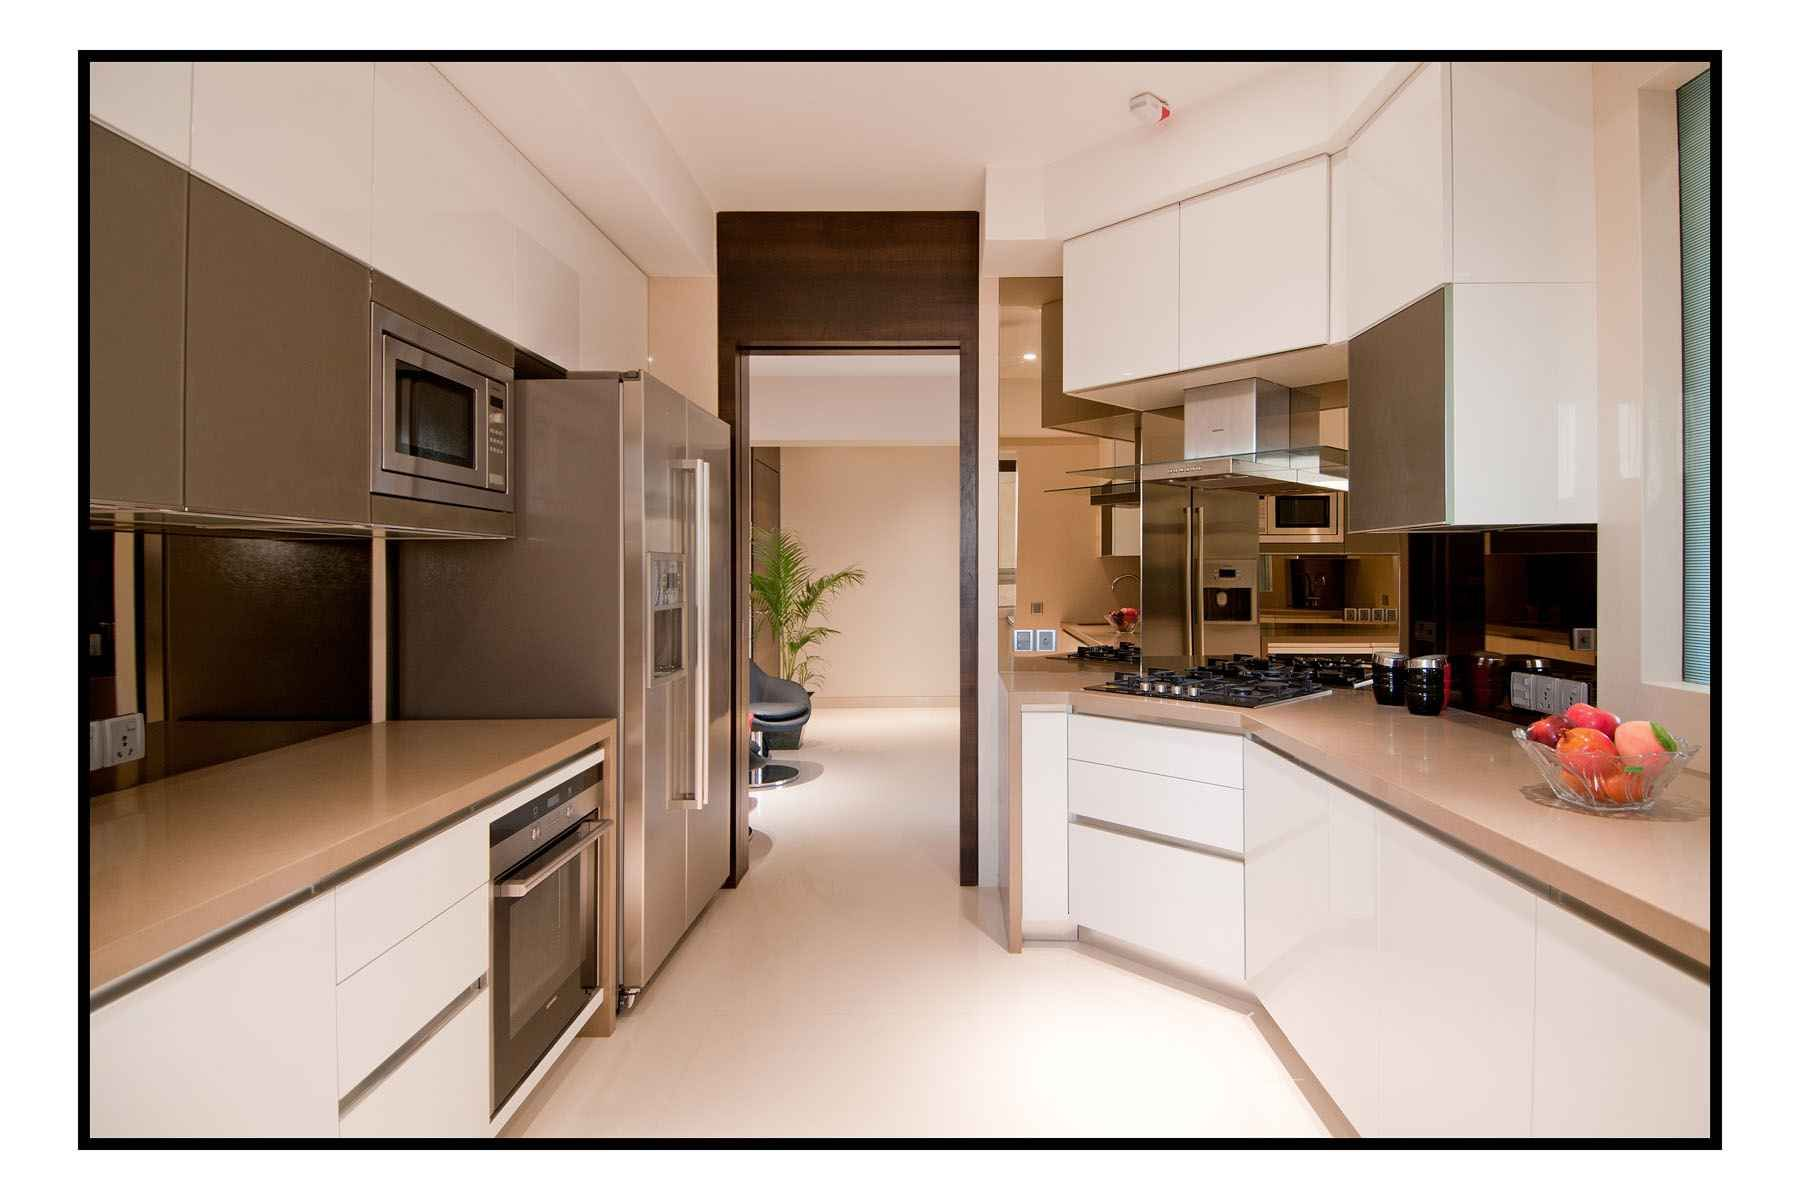 Perfect Cool Kitchen Design By Sameer Panchal, Architect In Mumbai, Maharashtra,  India